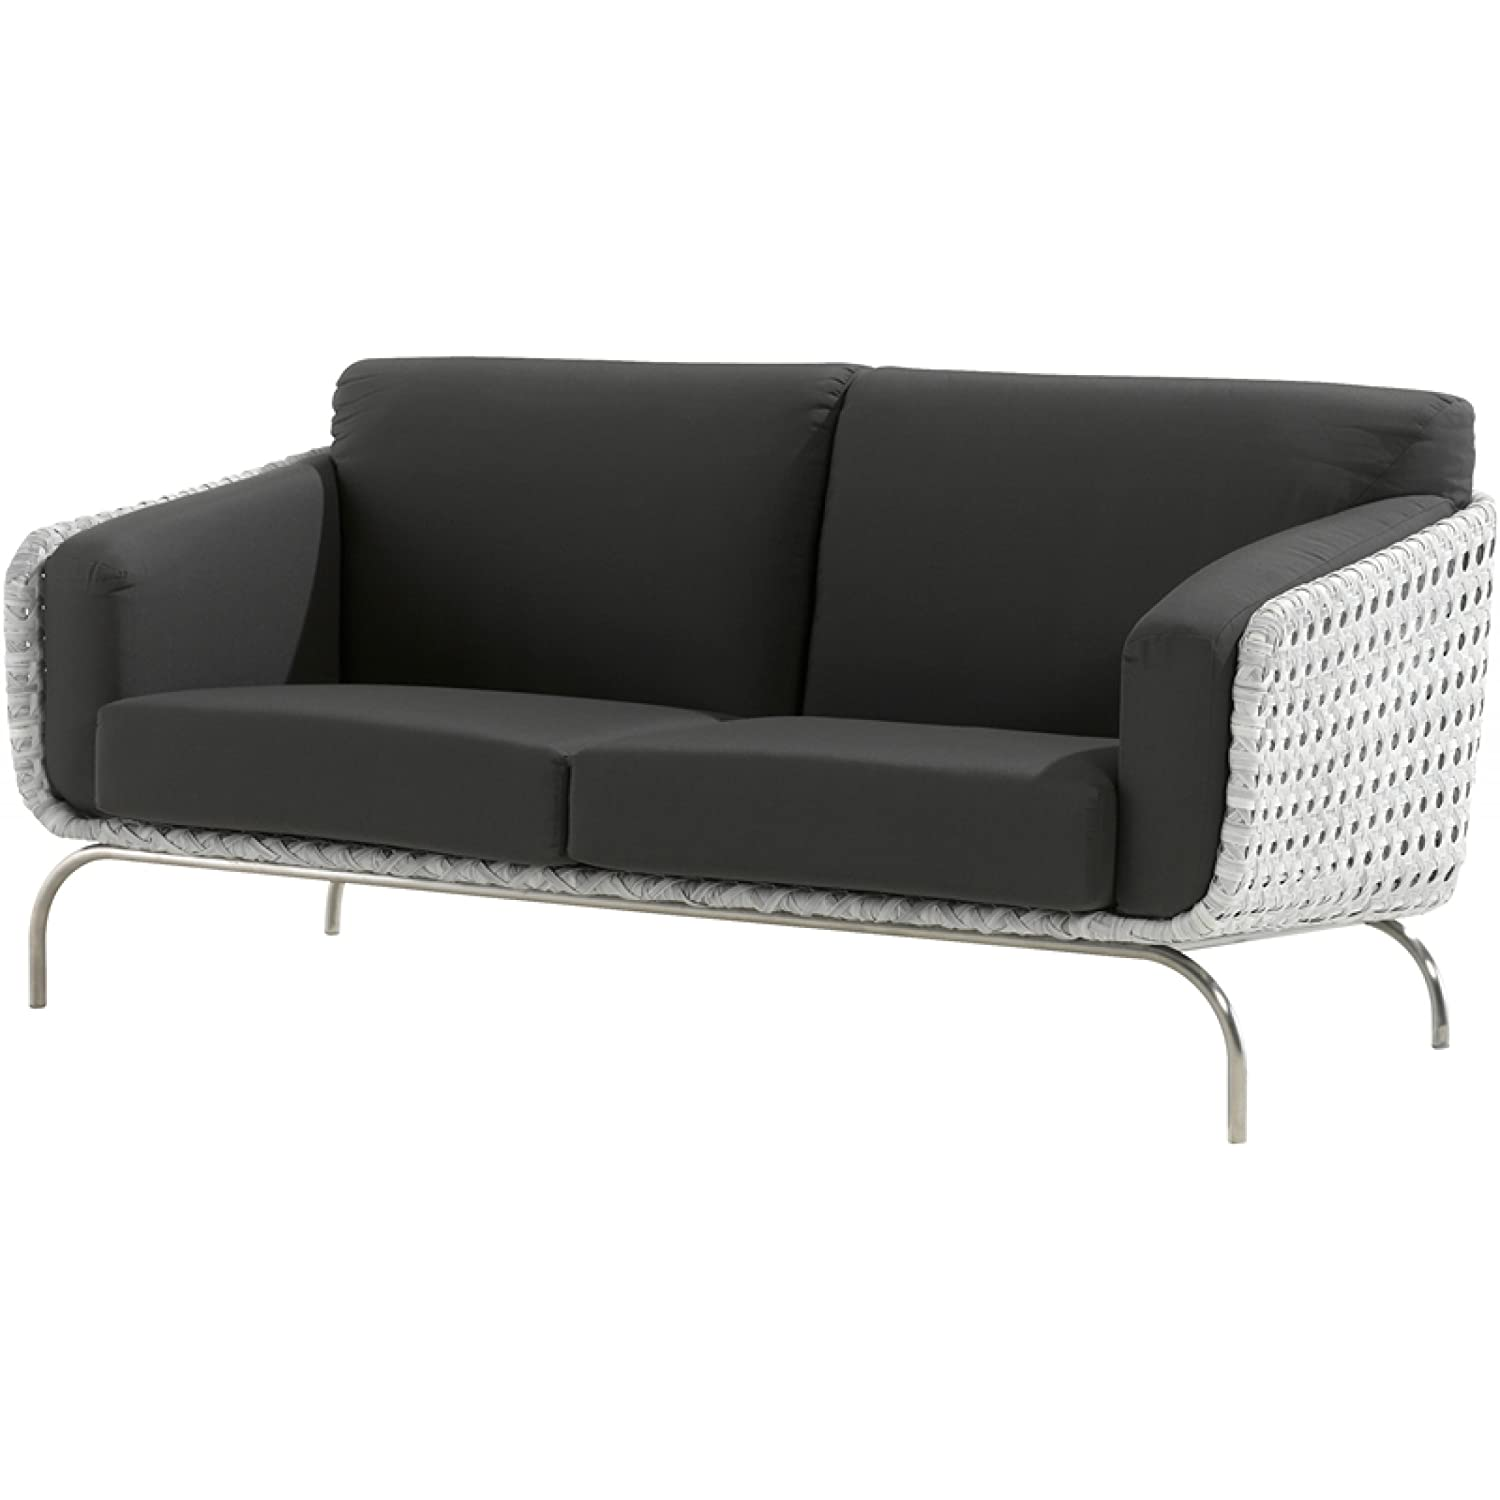 4Seasons Outdoor Luton 2.5-Sitzer Sofa Polyrattan pearl